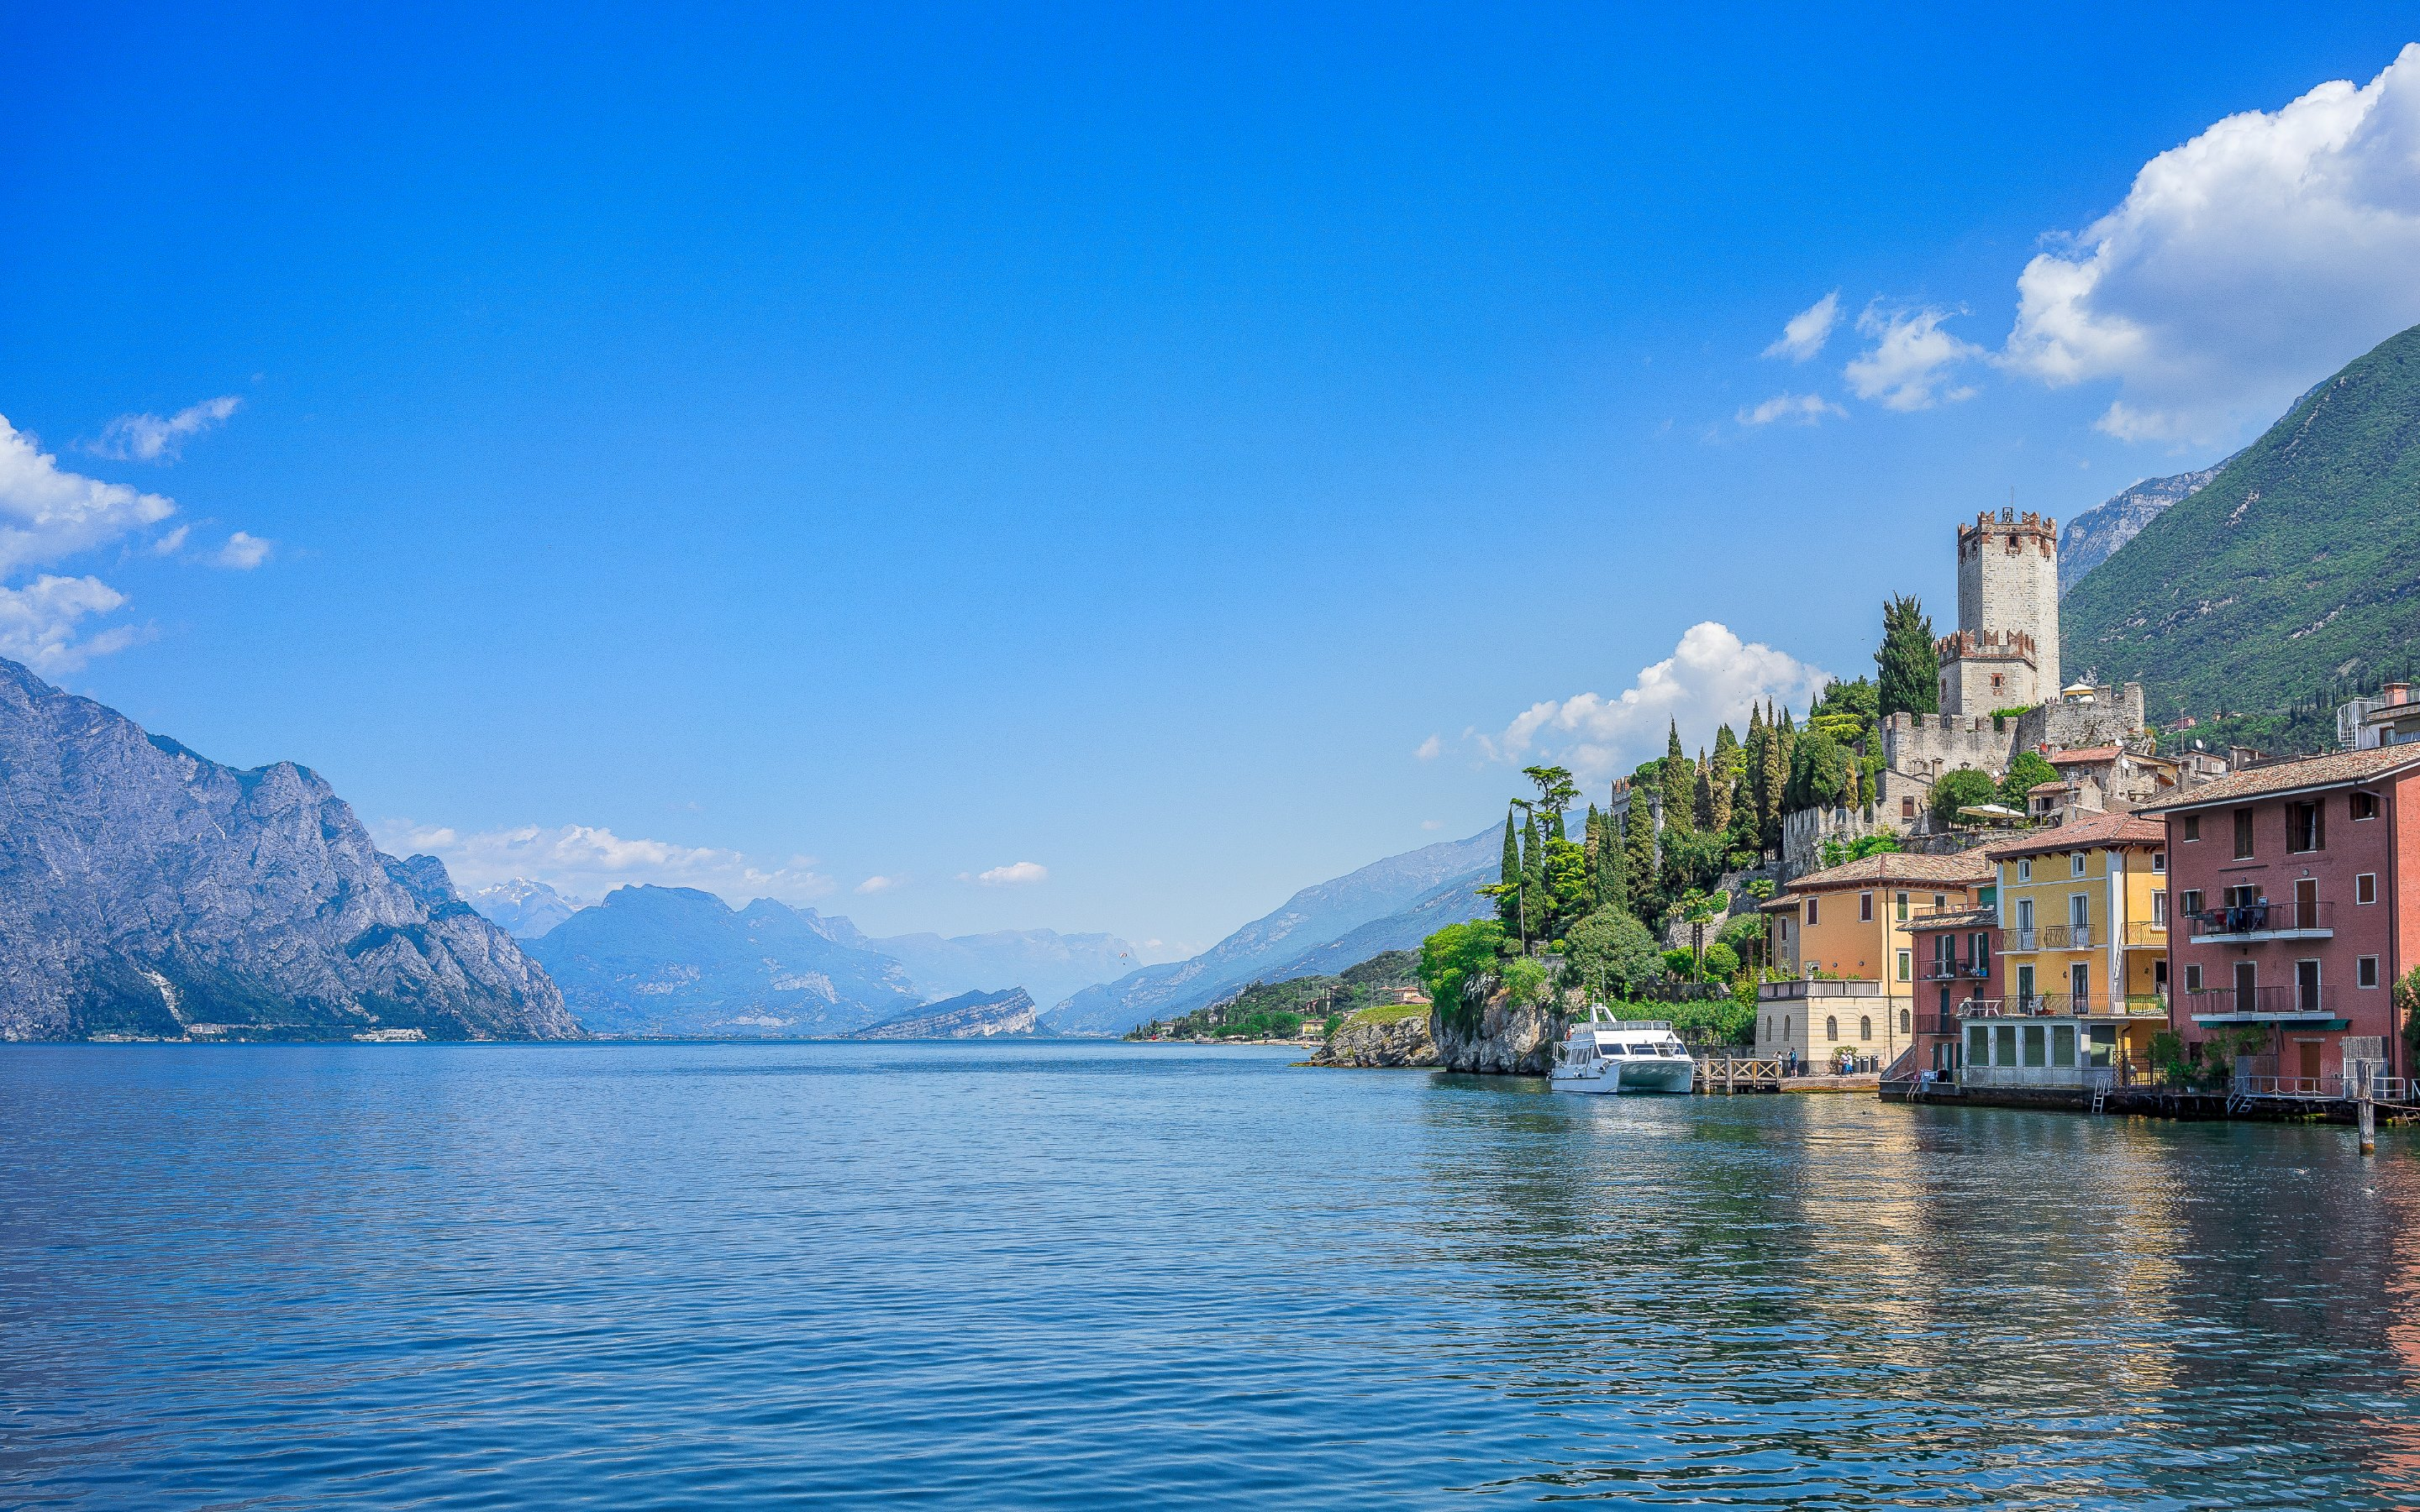 Car Desktop Wallpaper Hd 3d Full Screen Free Download Download Lake Garda Wallpaper Gallery